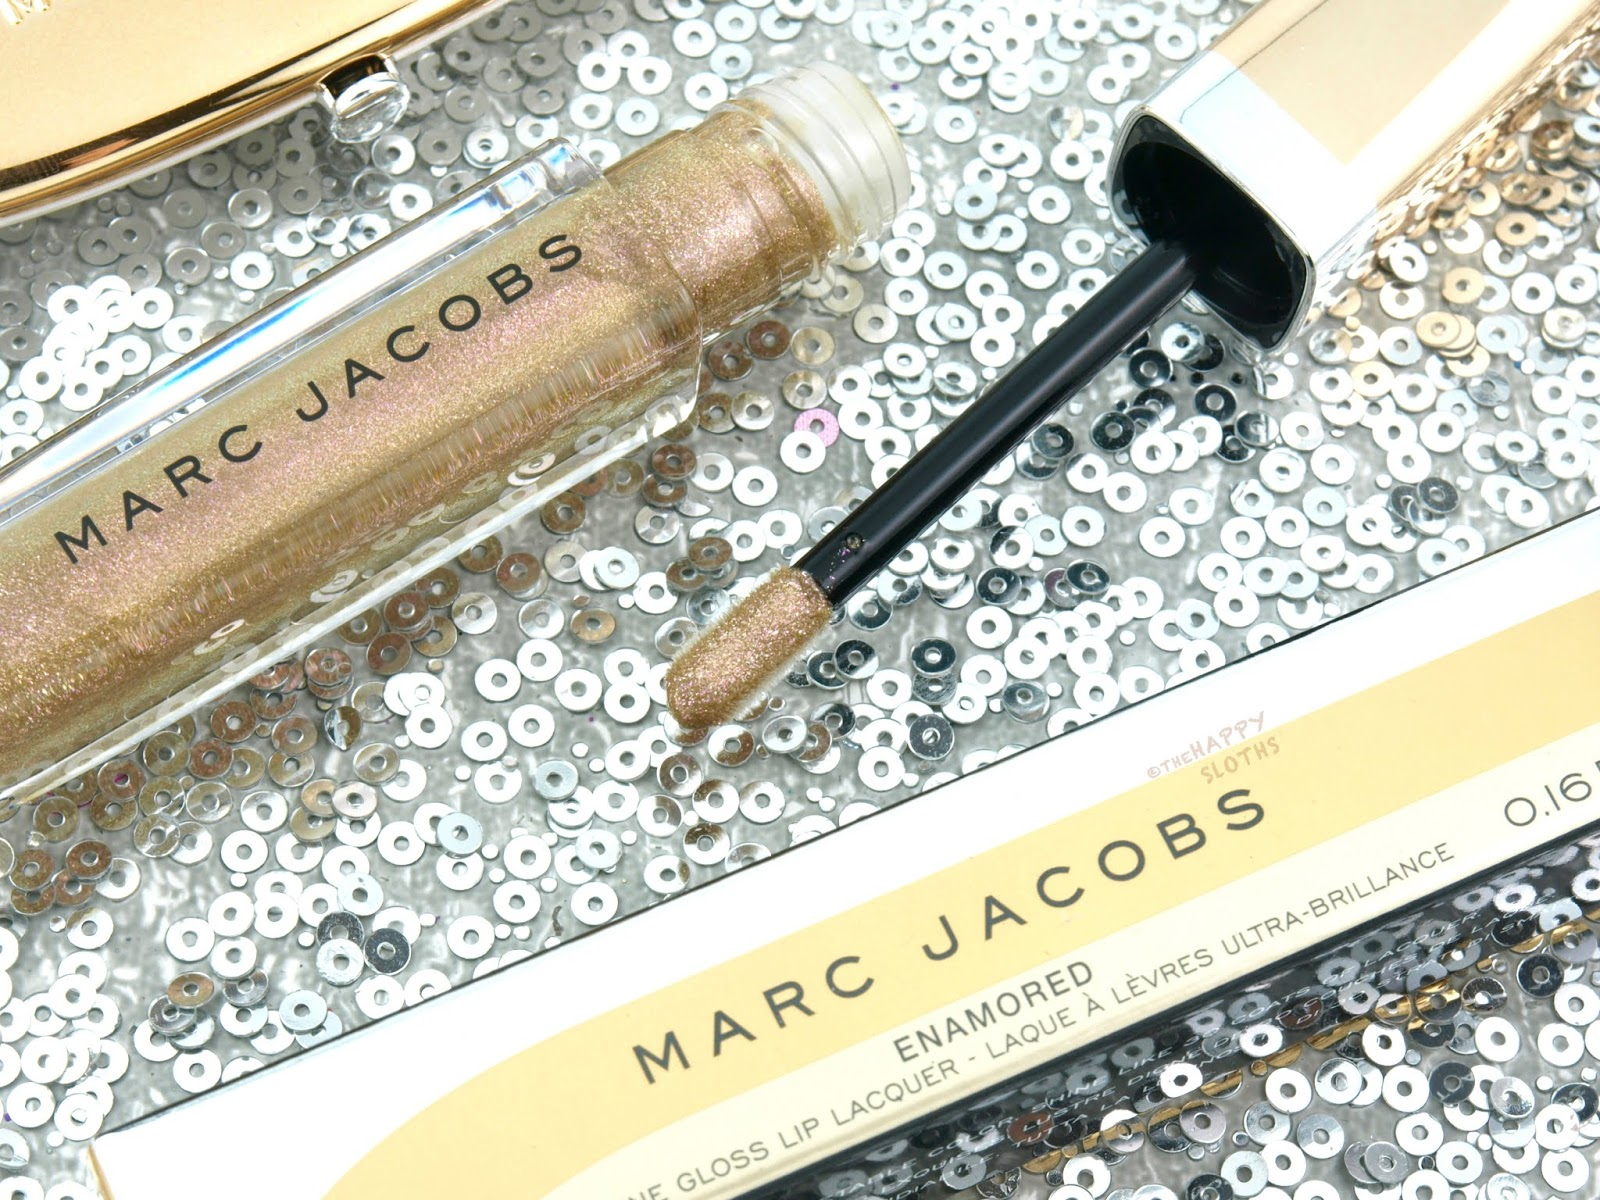 "Marc Jacobs | Holiday 2018 Enamored Hi-Shine Lip Lacquer Lipgloss in ""368 Shine A Light"": Review and Swatches"